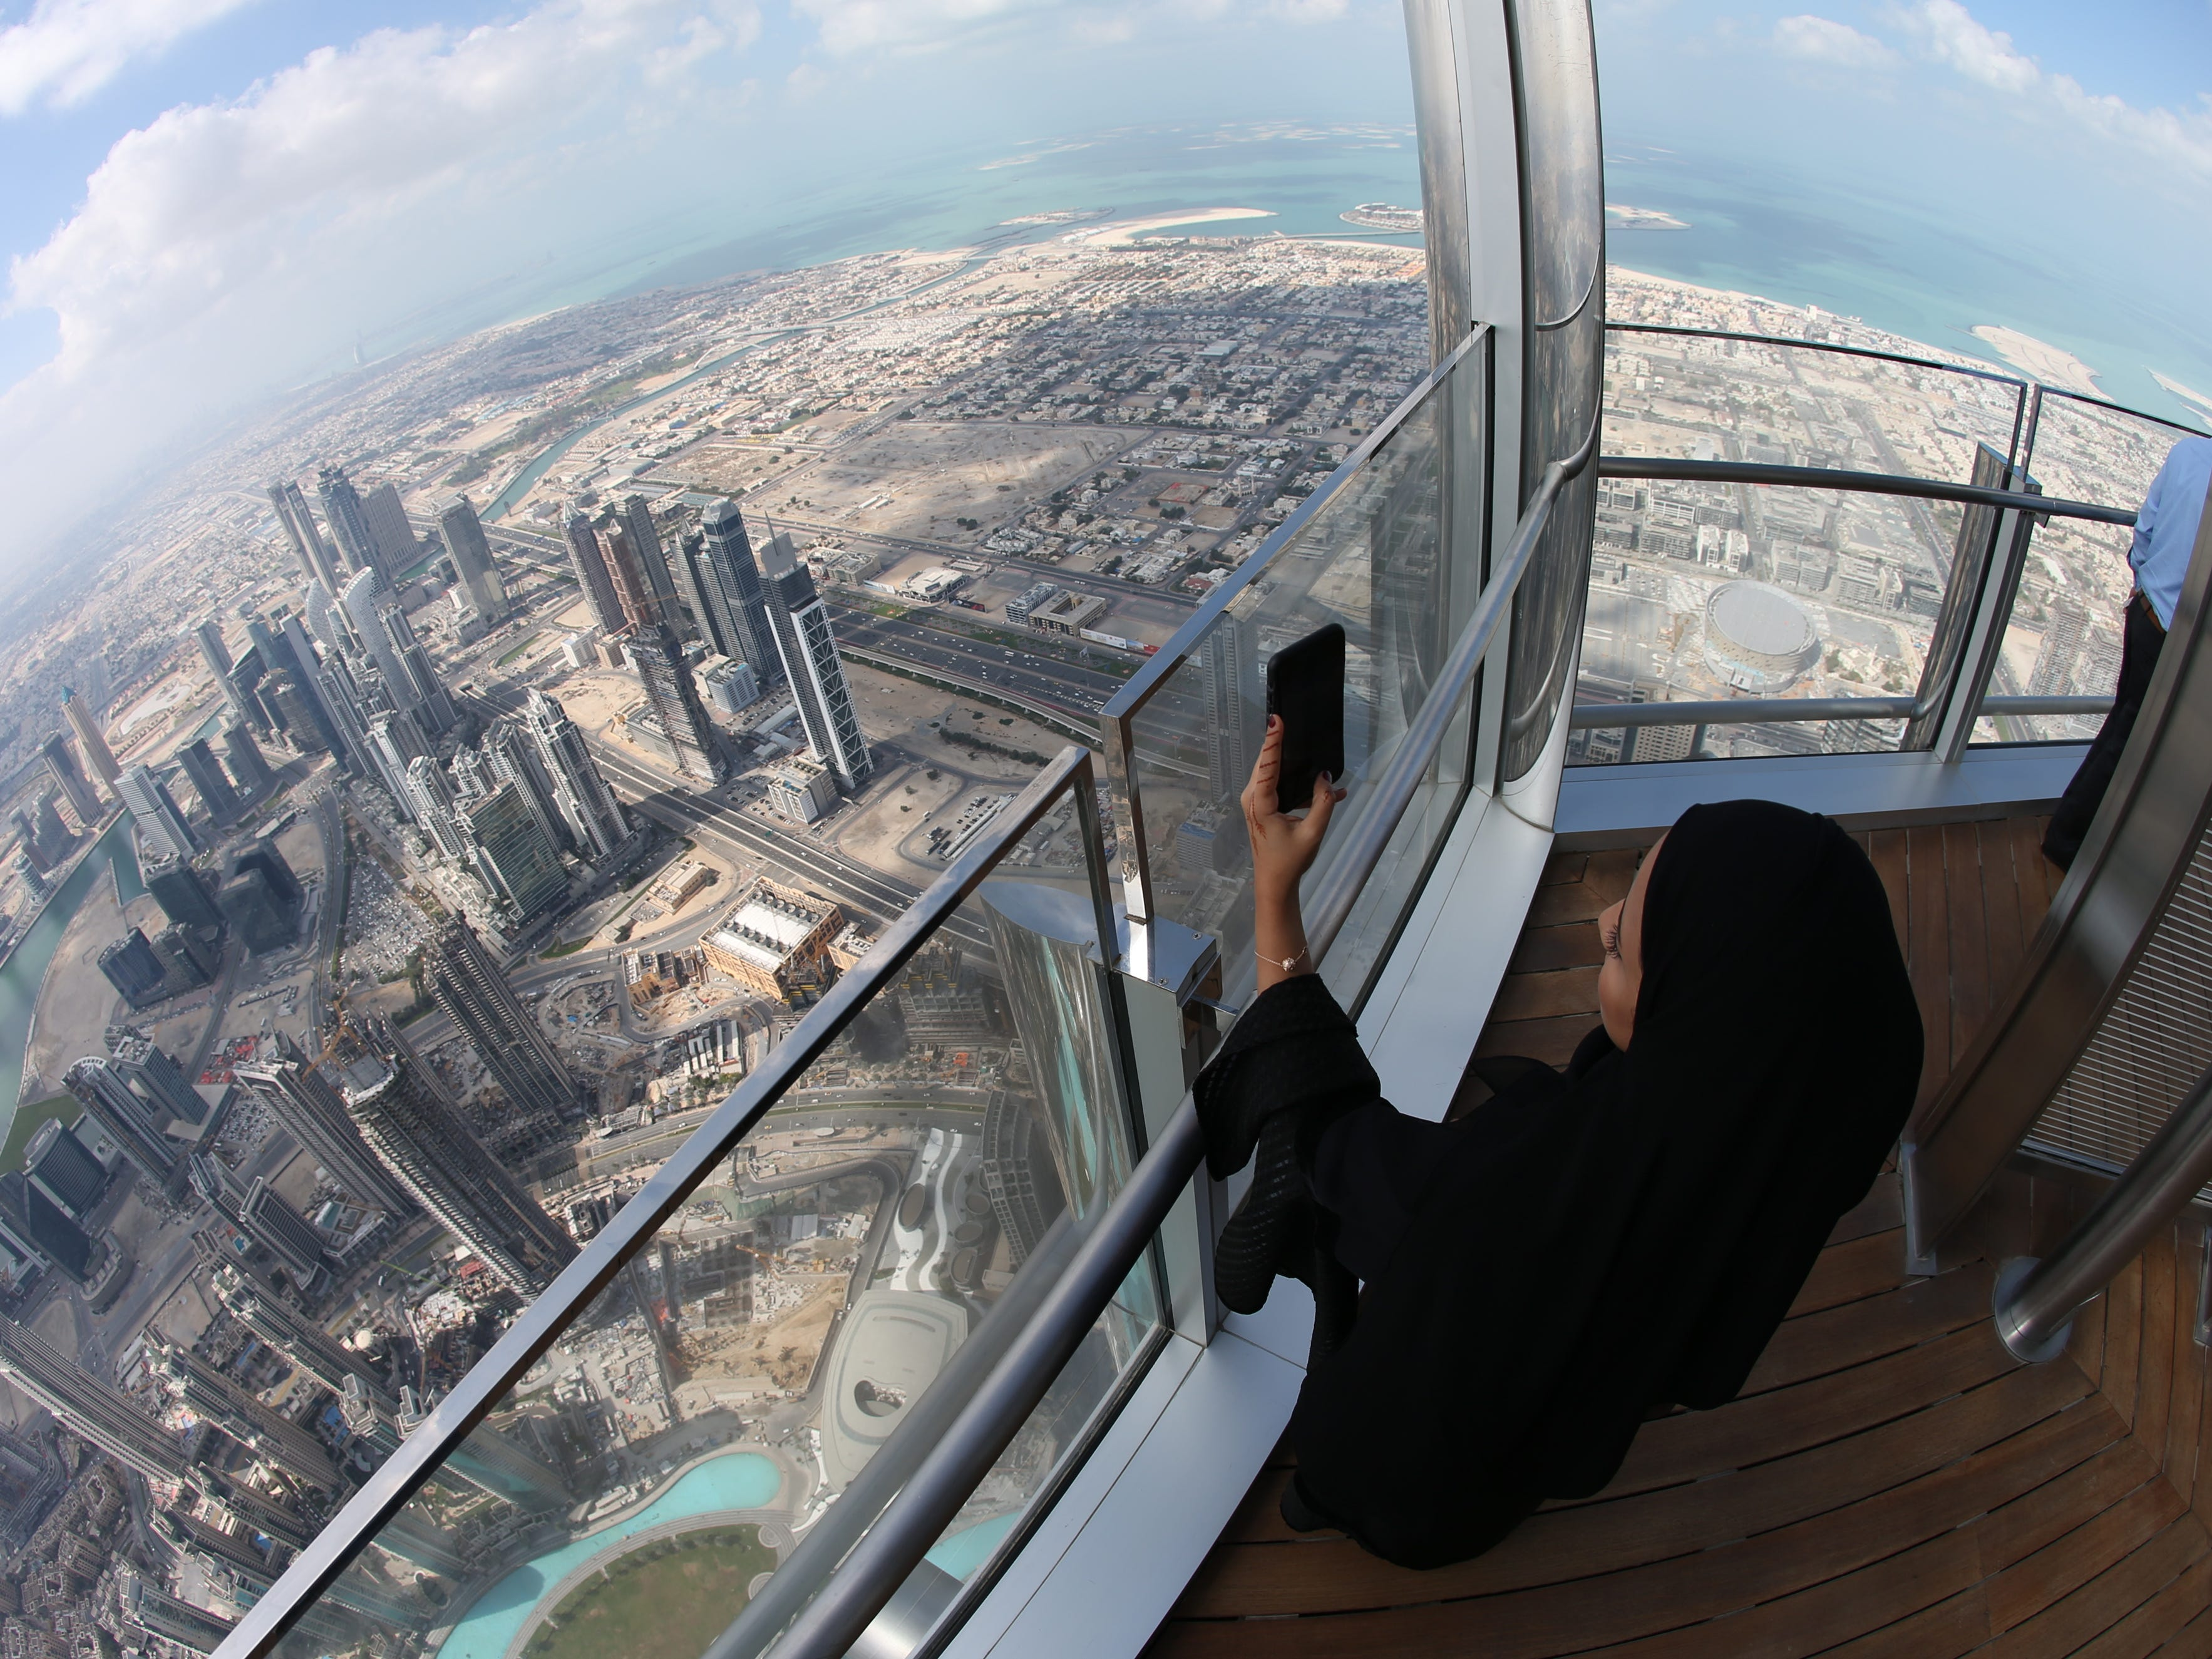 epa07366680 A picture taken with a fish eye lens shows people inspecting the new highest lounge in the world at Burj Khalifa in Dubai, United Arab Emirates, 13 February 2019. Ahmad Al Falasi, Executive Director Emaar Properties announced during media briefing the opening of highest lounge in the world at Burj Khalifa which is located at 152, 153 and 154 floor which have distinctive settings each assuring never before seen views of the city.  EPA-EFE/ALI HAIDER ORG XMIT: XAH001